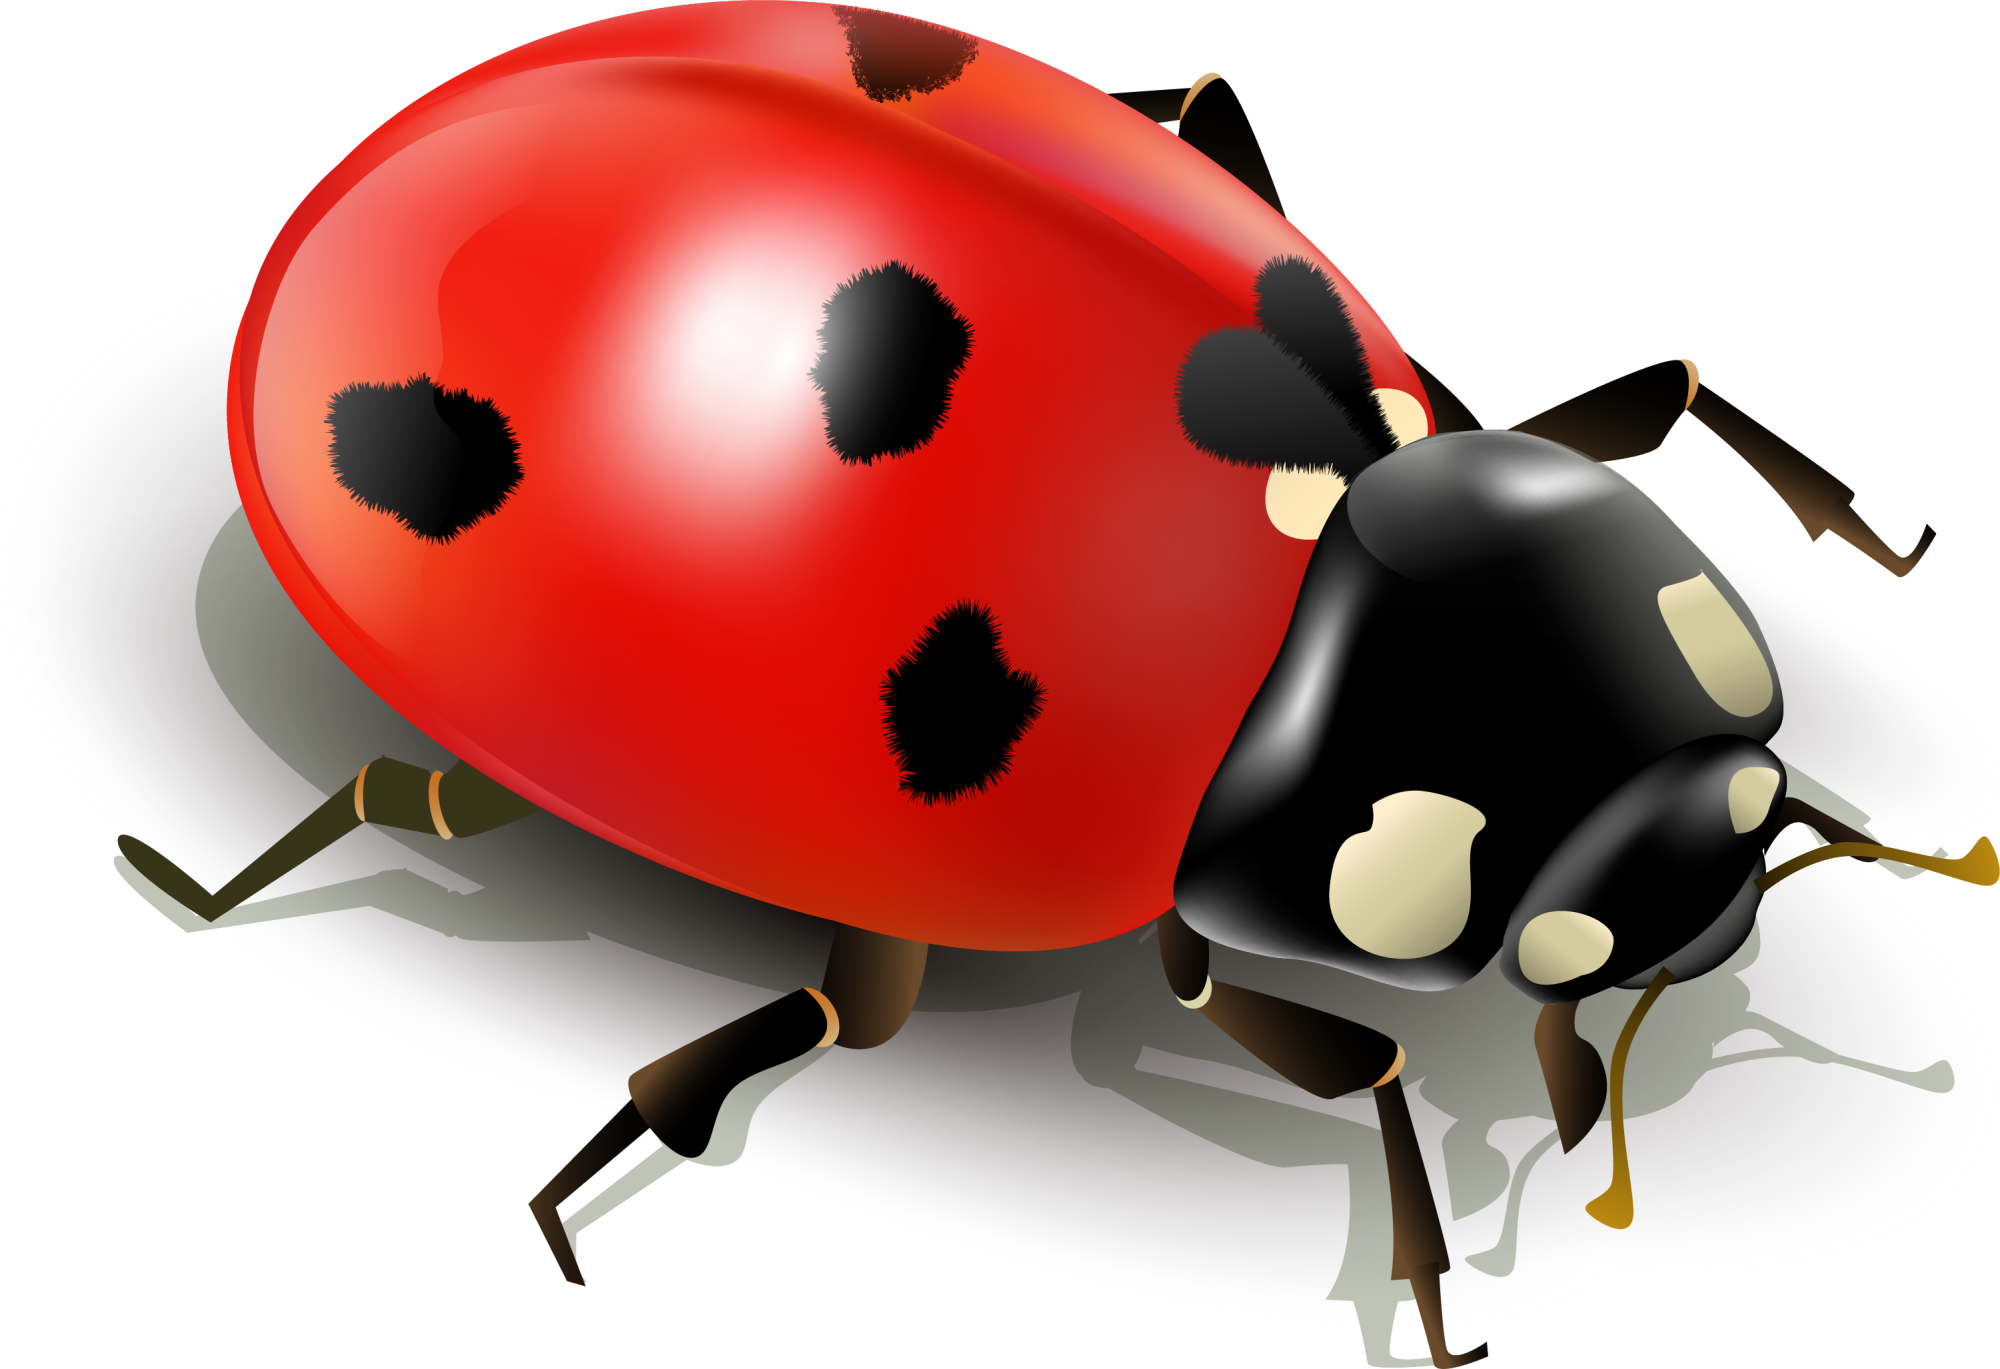 Insect ladybird clip art. Ladybug clipart egg